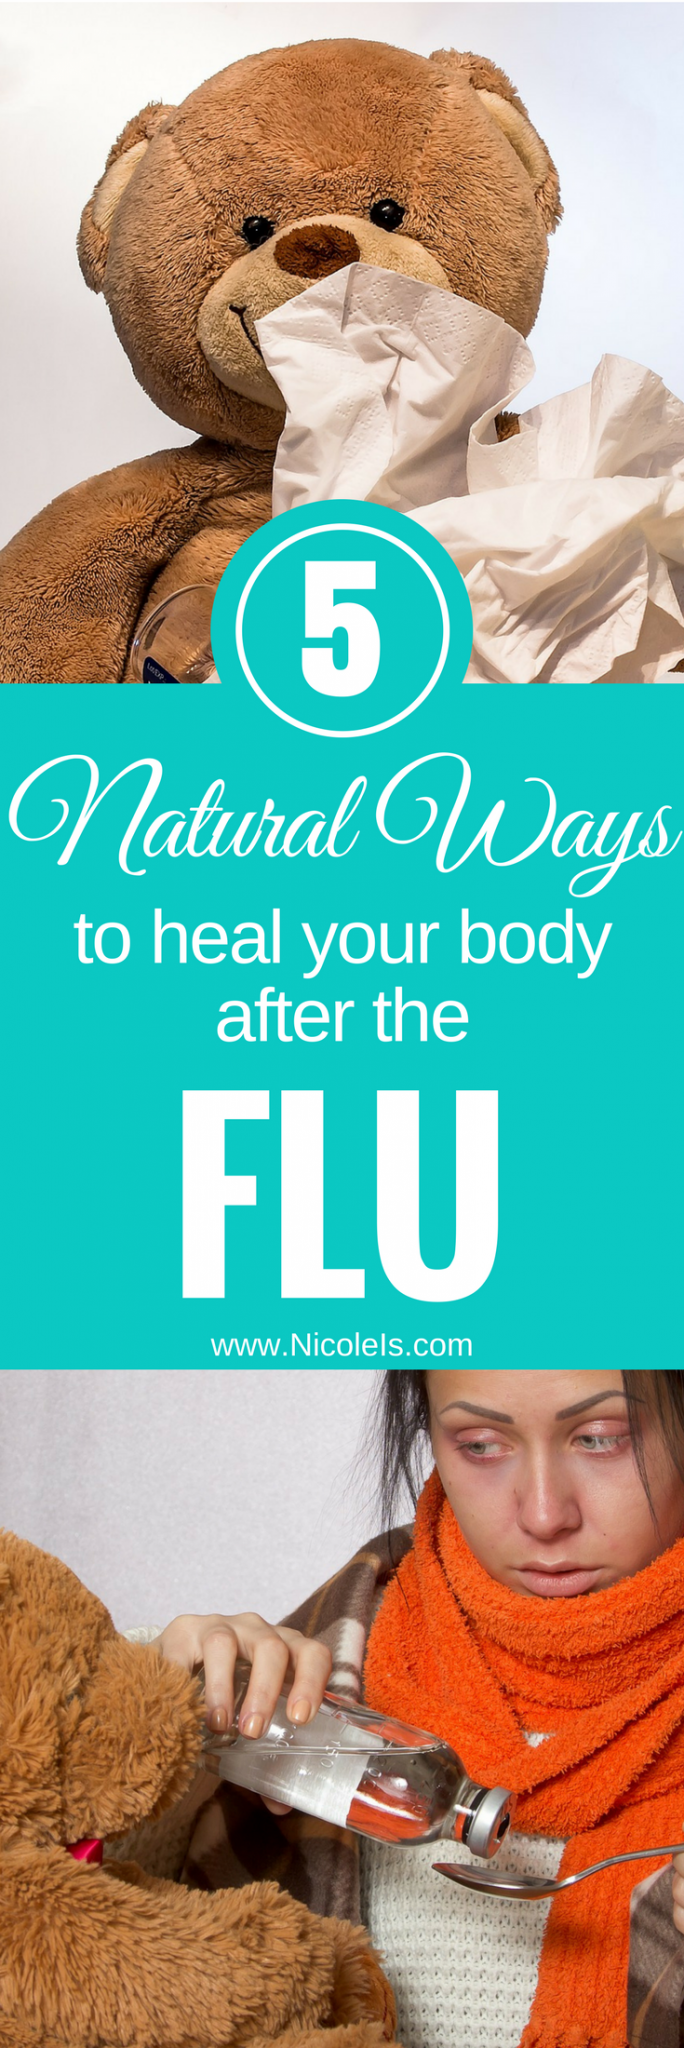 5 Natural Ways to Heal Yourself After The Flu | Nicole Is... | Flu remedies | Flu | Cold | Cold Remedies | Home Remedies | Holistic Medicine | Supplements | Probiotics | Fermented Foods | Kombucha | Kefir | CoQ10 | Echinacea Golden Seal | Turmeric | Health Benefits